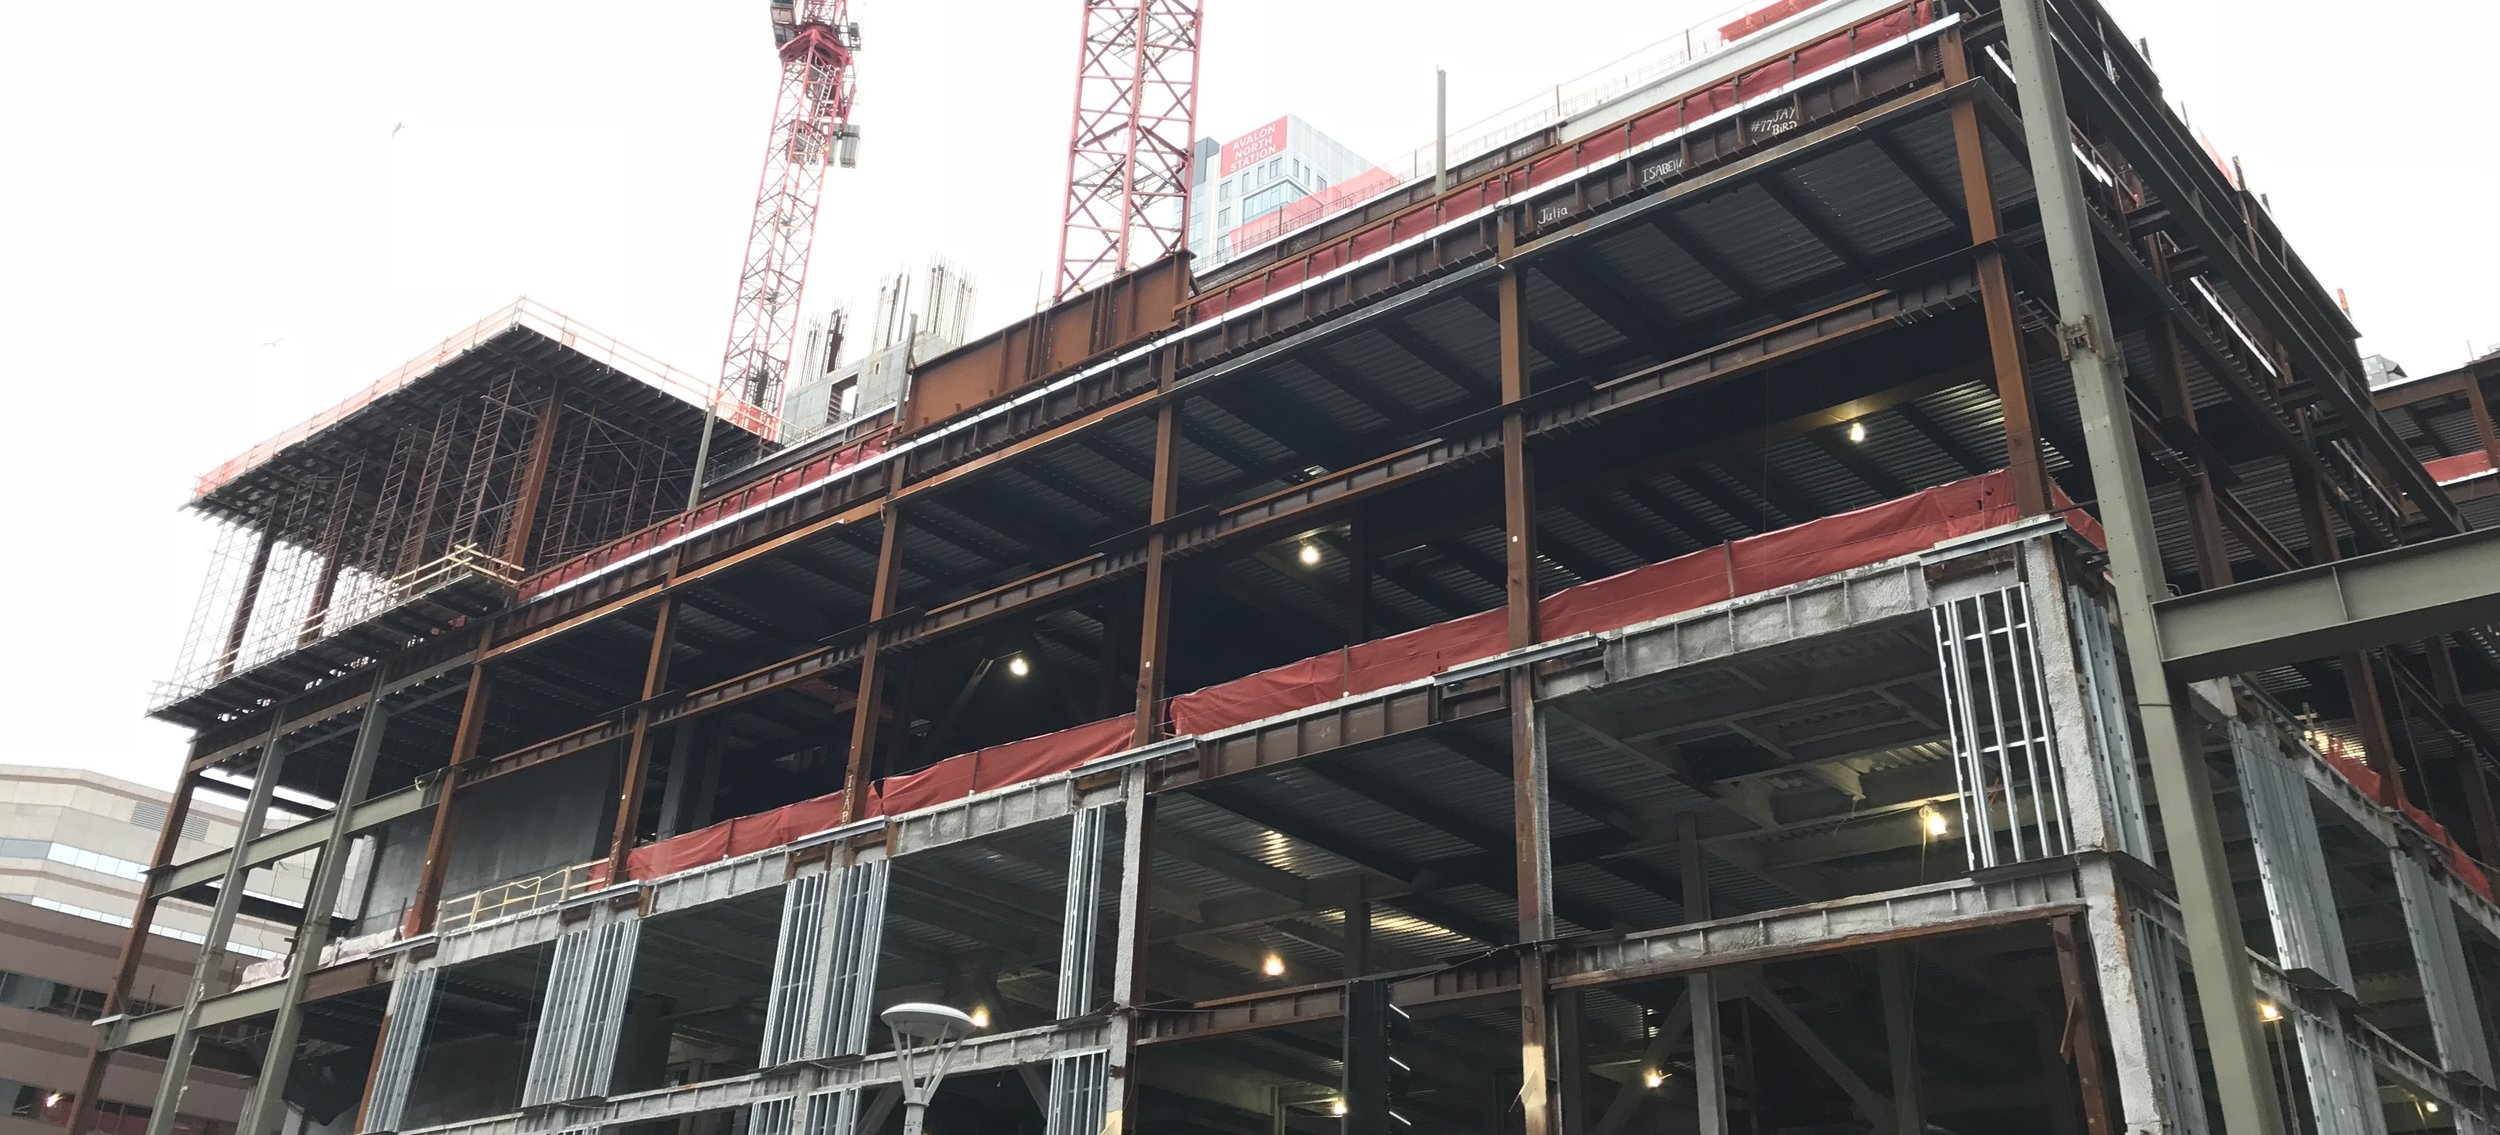 Image: A large building under construction, with exposed girders visible. The building's structure is clearly visible.